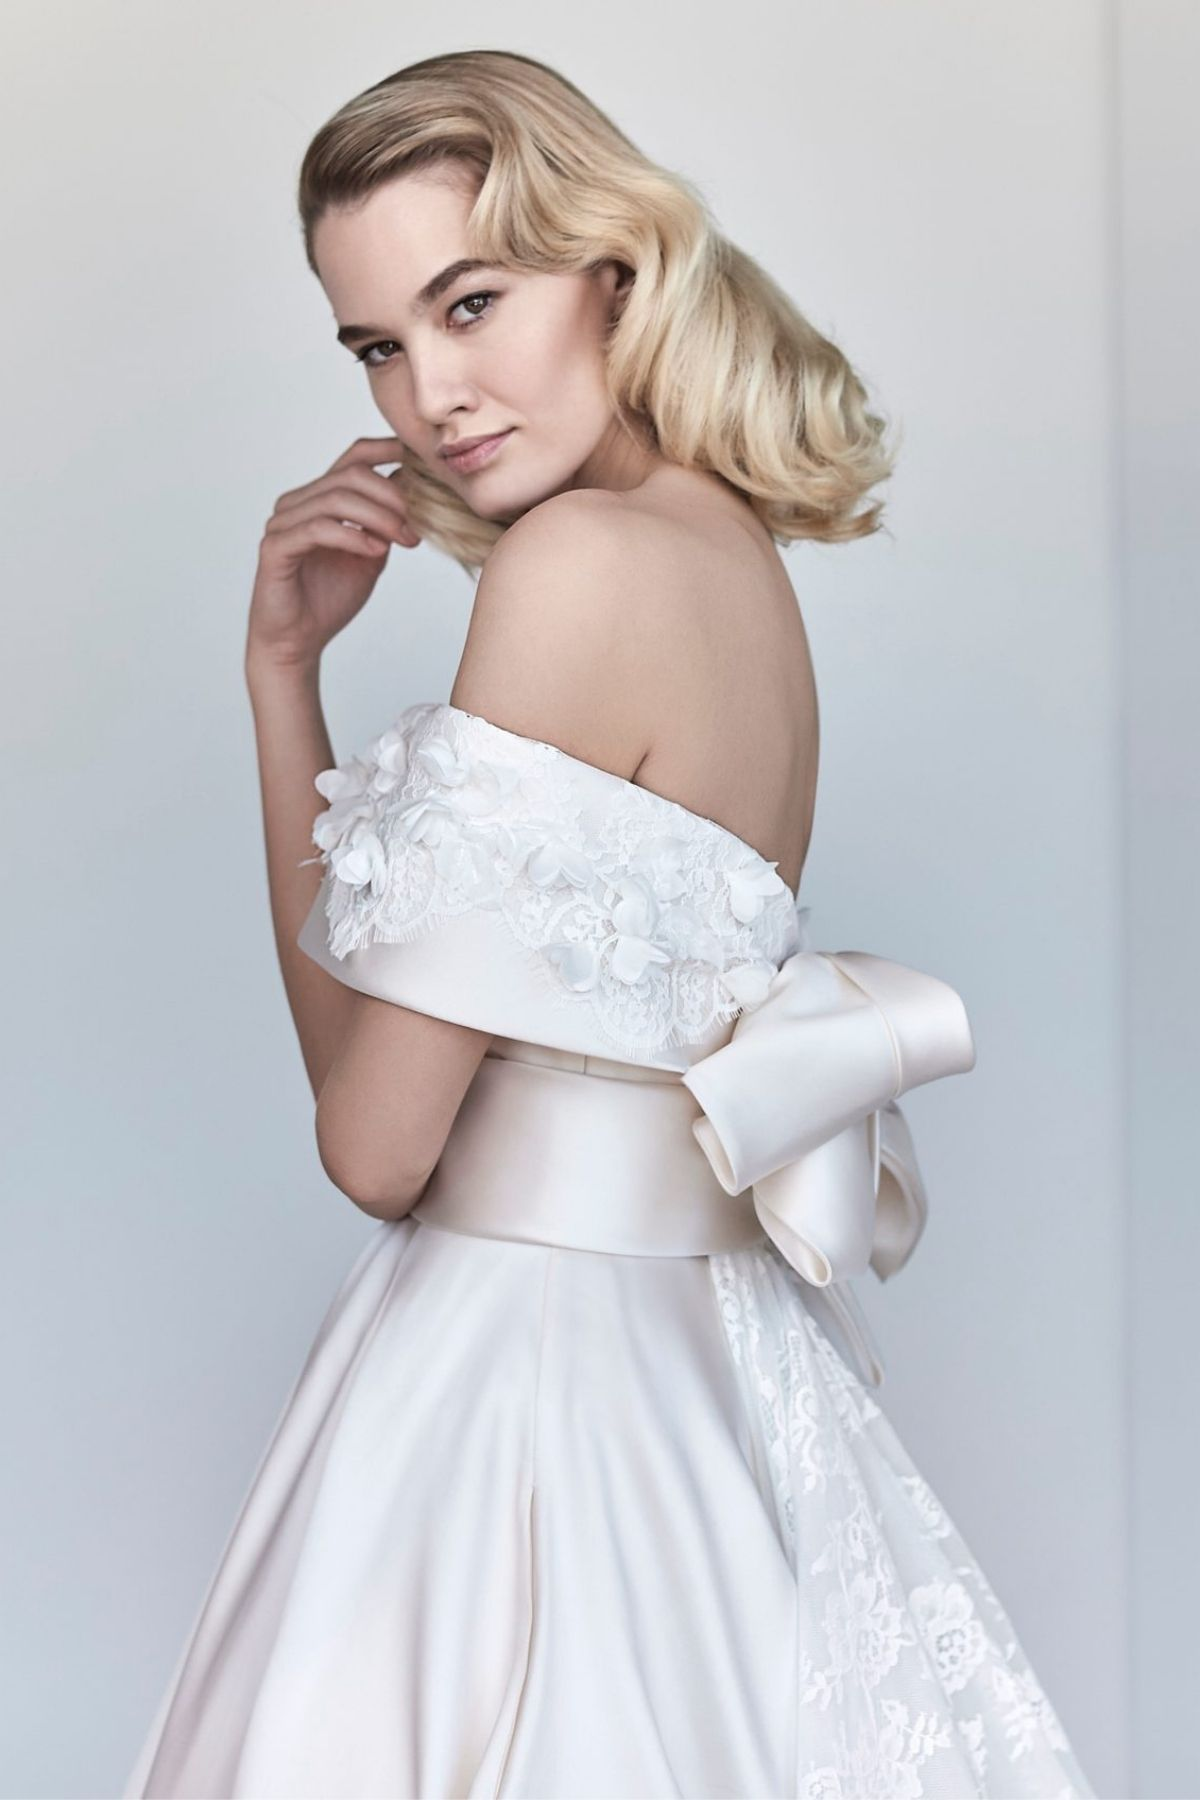 3. Maison Signore // OFF THE SHOULDER PINK BALL GOWN WEDDING DRESS -